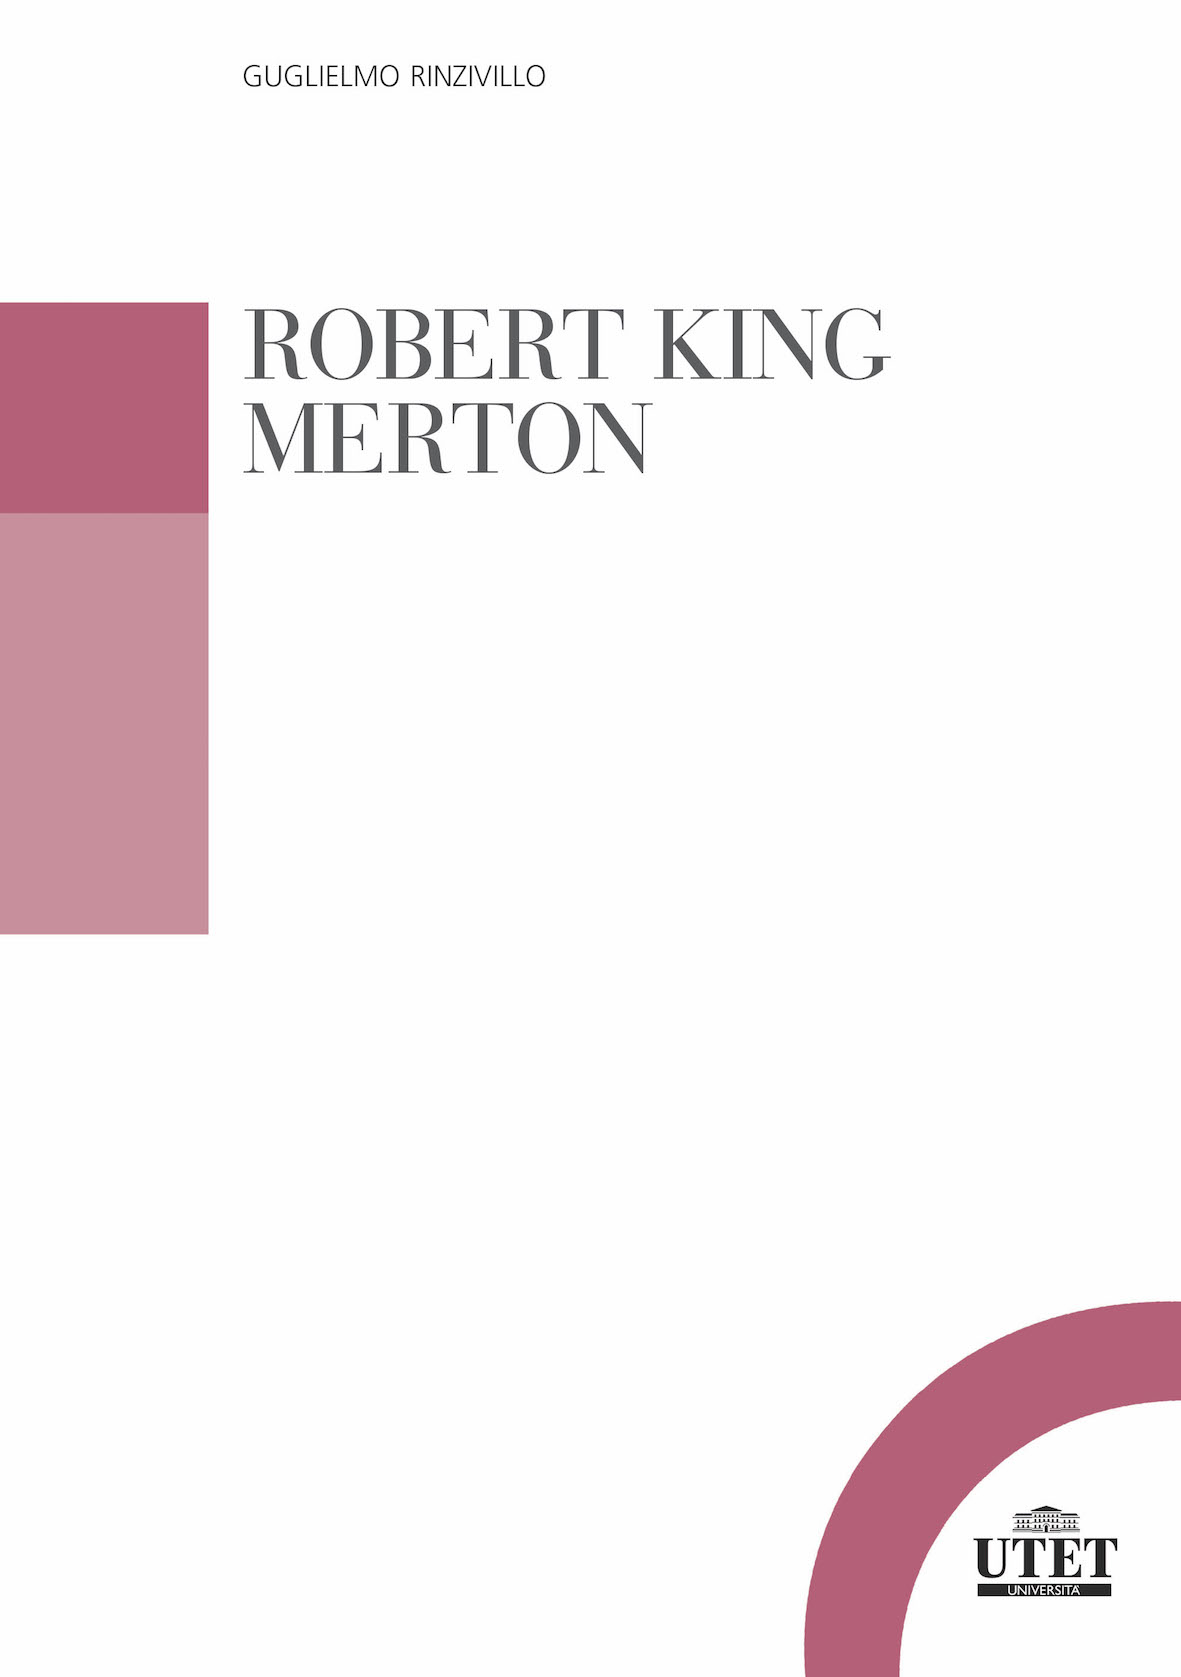 Robert King Merton